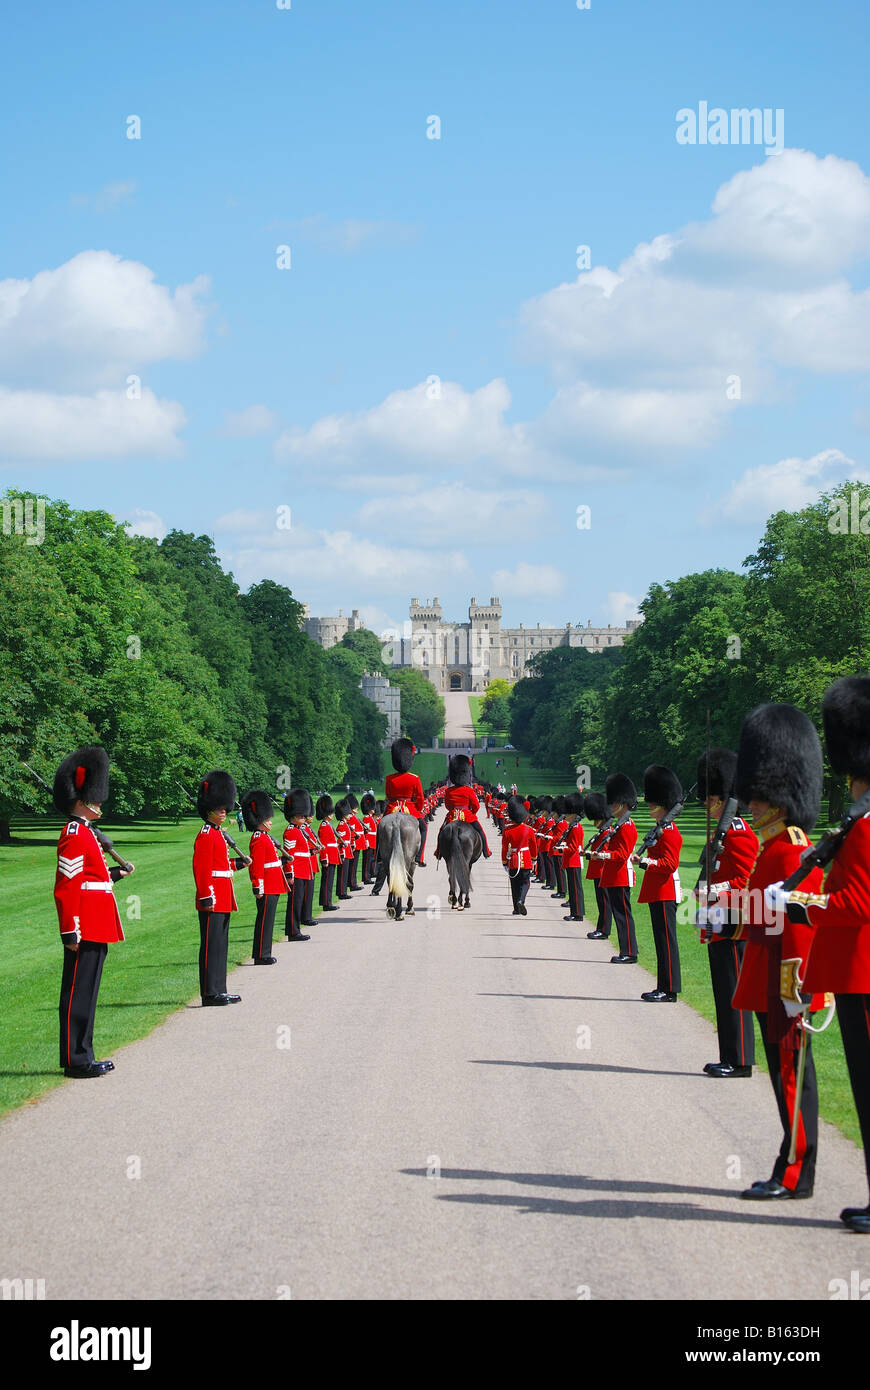 Household Cavalry parading on The Long Walk, Windsor Castle, Windsor, Berkshire, England, United Kingdom Stock Photo